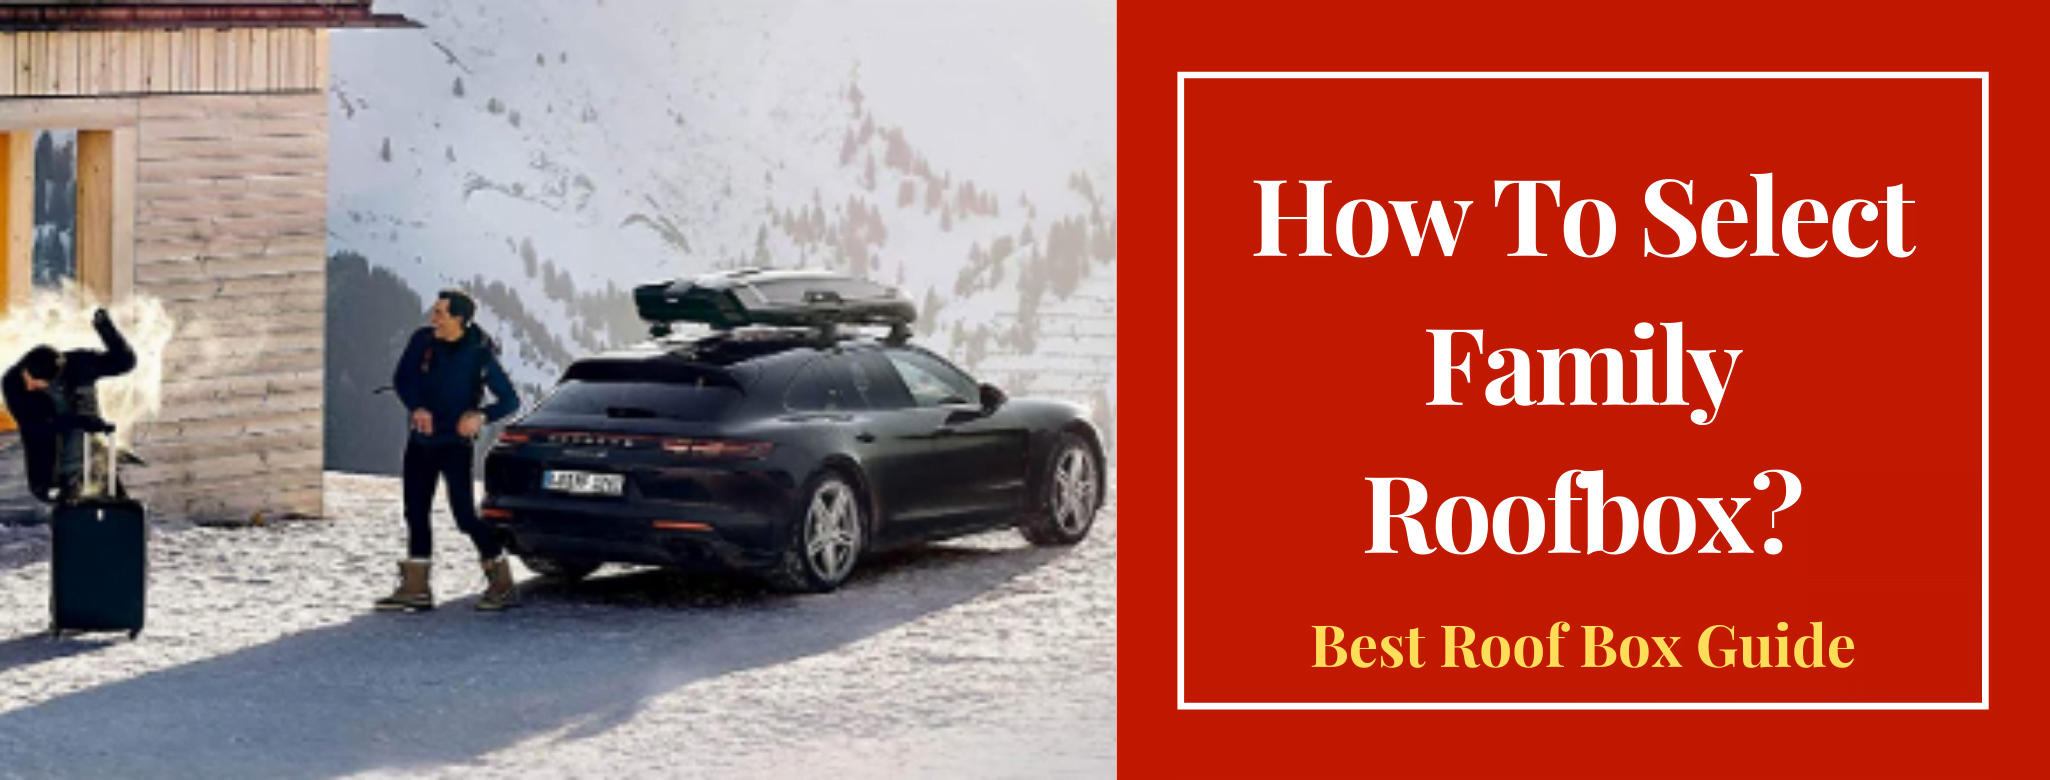 🤔 How To Select Family Roofbox❓ | Best Family Roofboxes For Outing